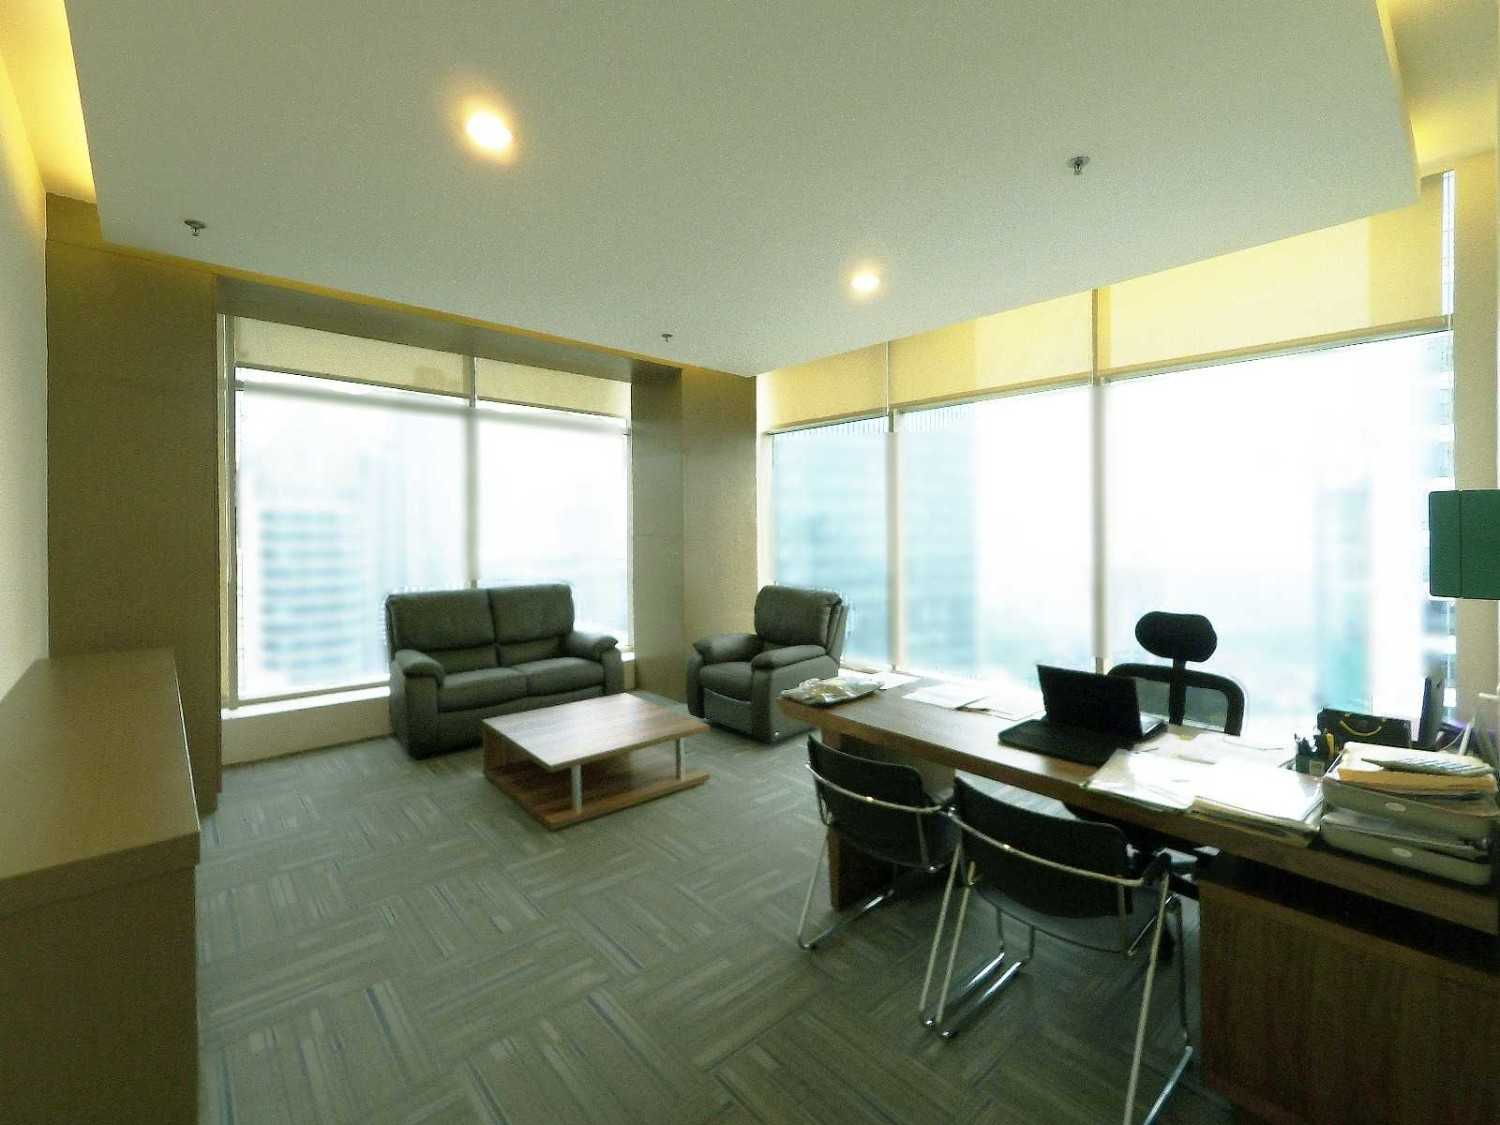 Arkadia Works Sekar Bumi Office Renovation Plaza Asia 21St Floor Plaza Asia 21St Floor Office Room  14082